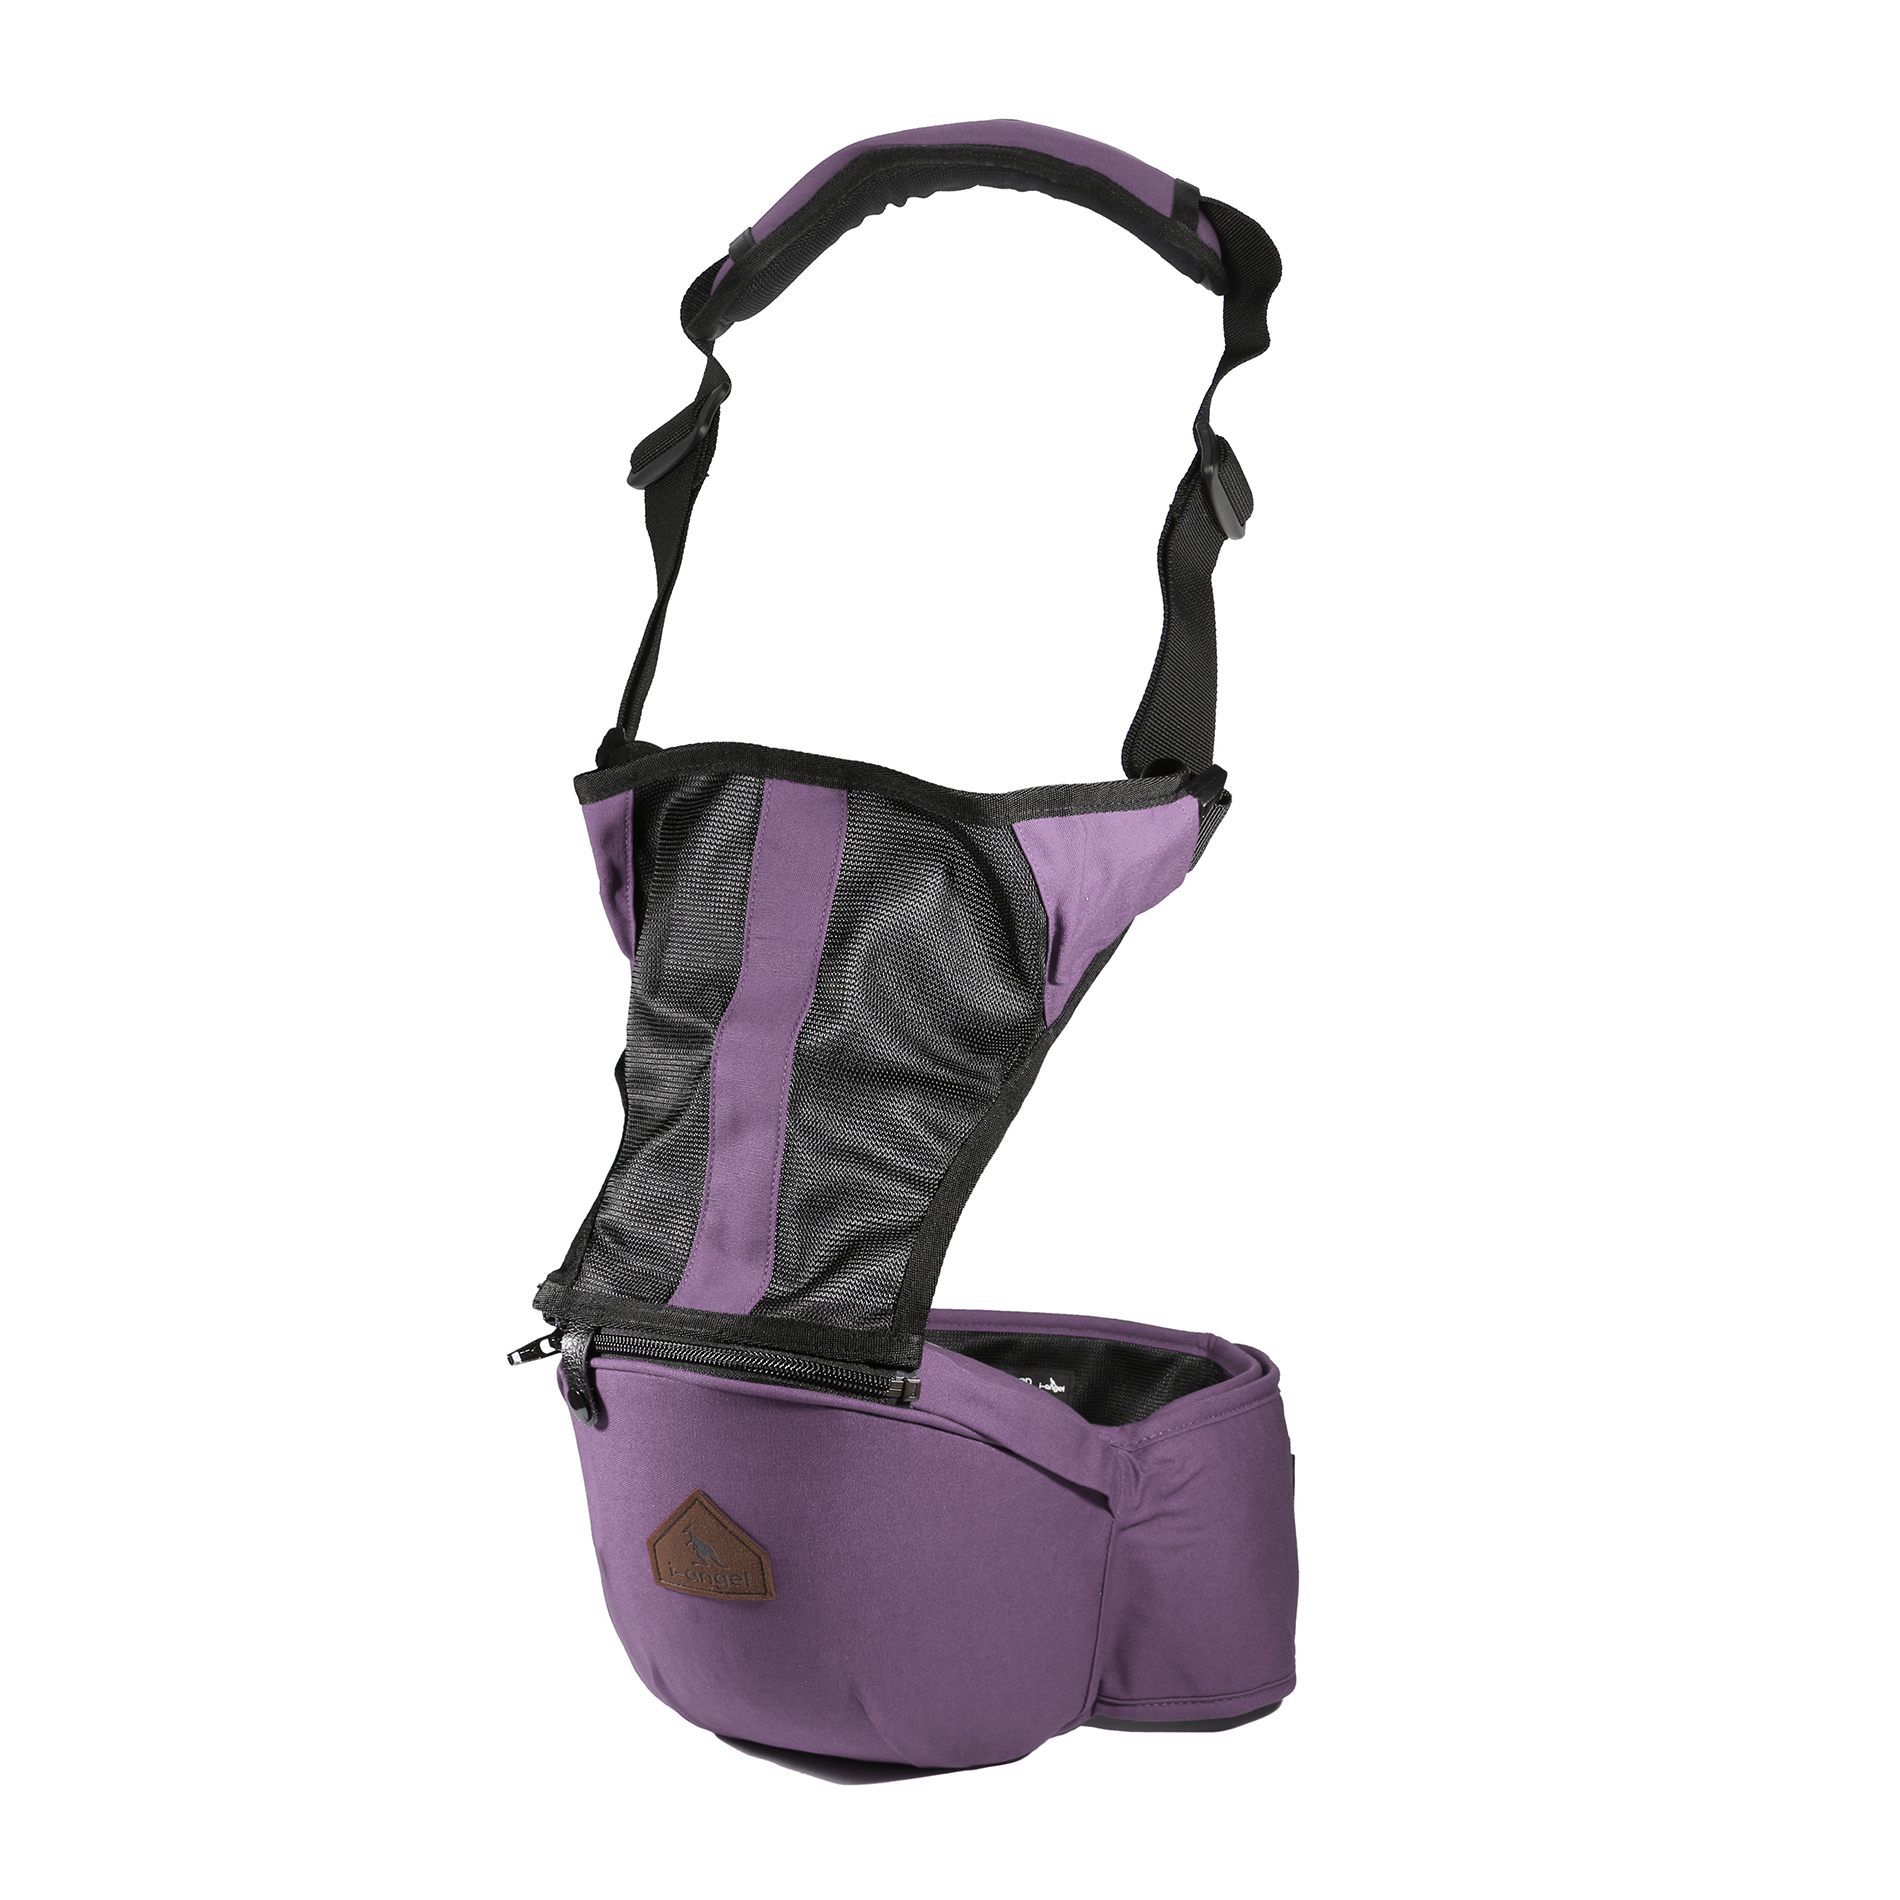 Simple Purple l Angel Safey Hip Seat Baby Carrier Sling Backpack Infant Belt for All Seasons and Shapes by Unbranded